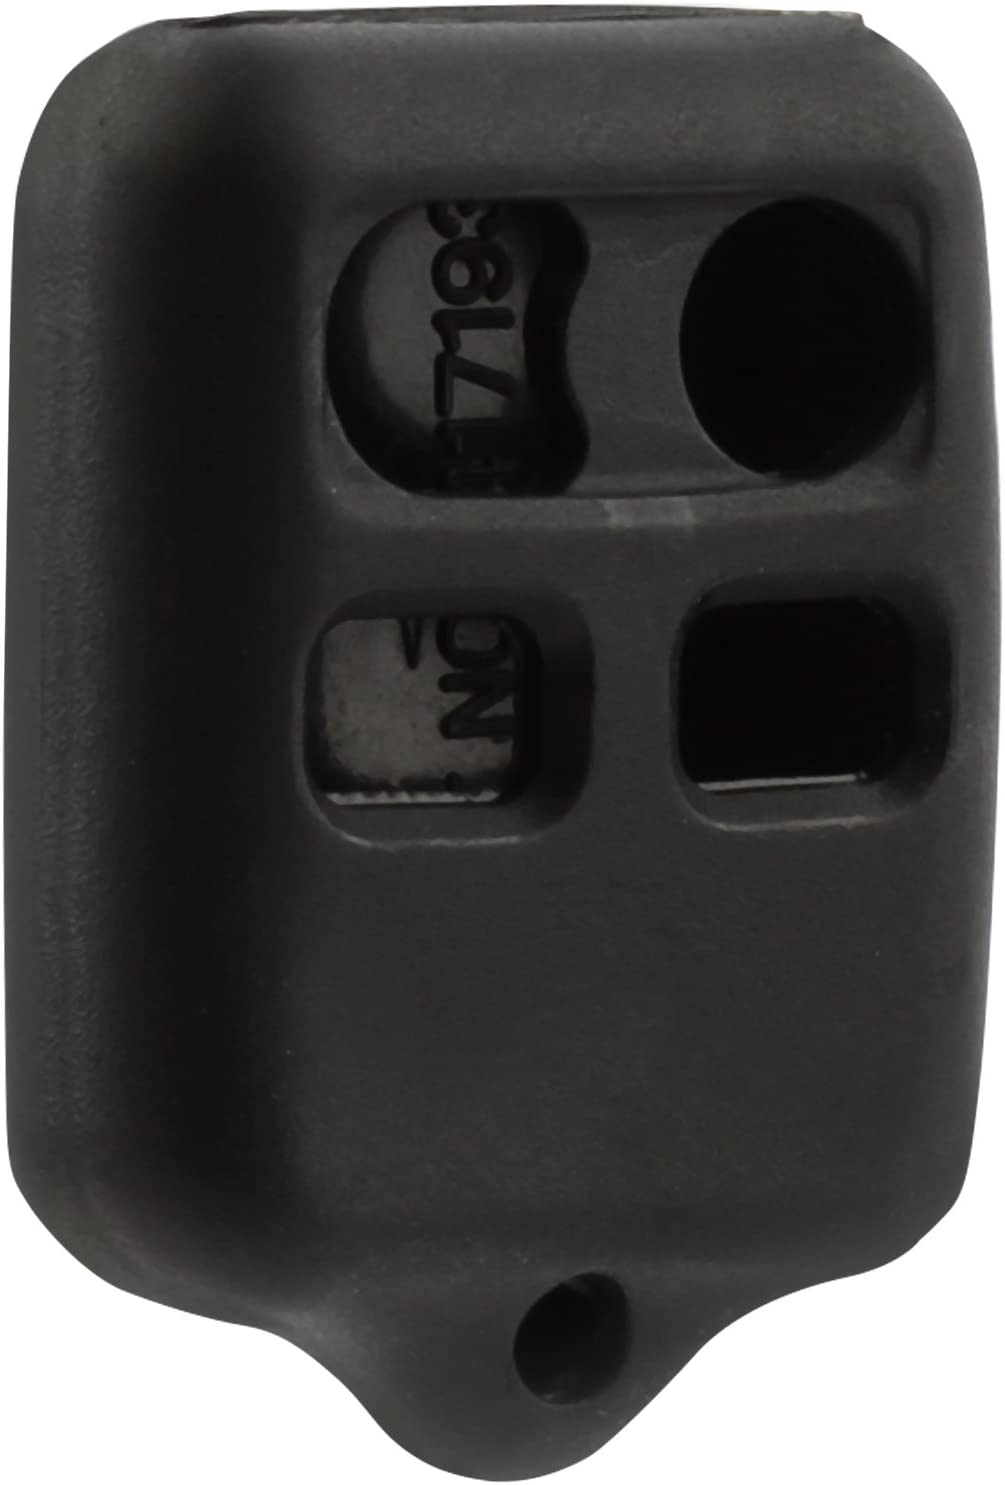 fits Ford Lincoln Mercury Key Fob Remote Case Cover Skin Protector USARemote